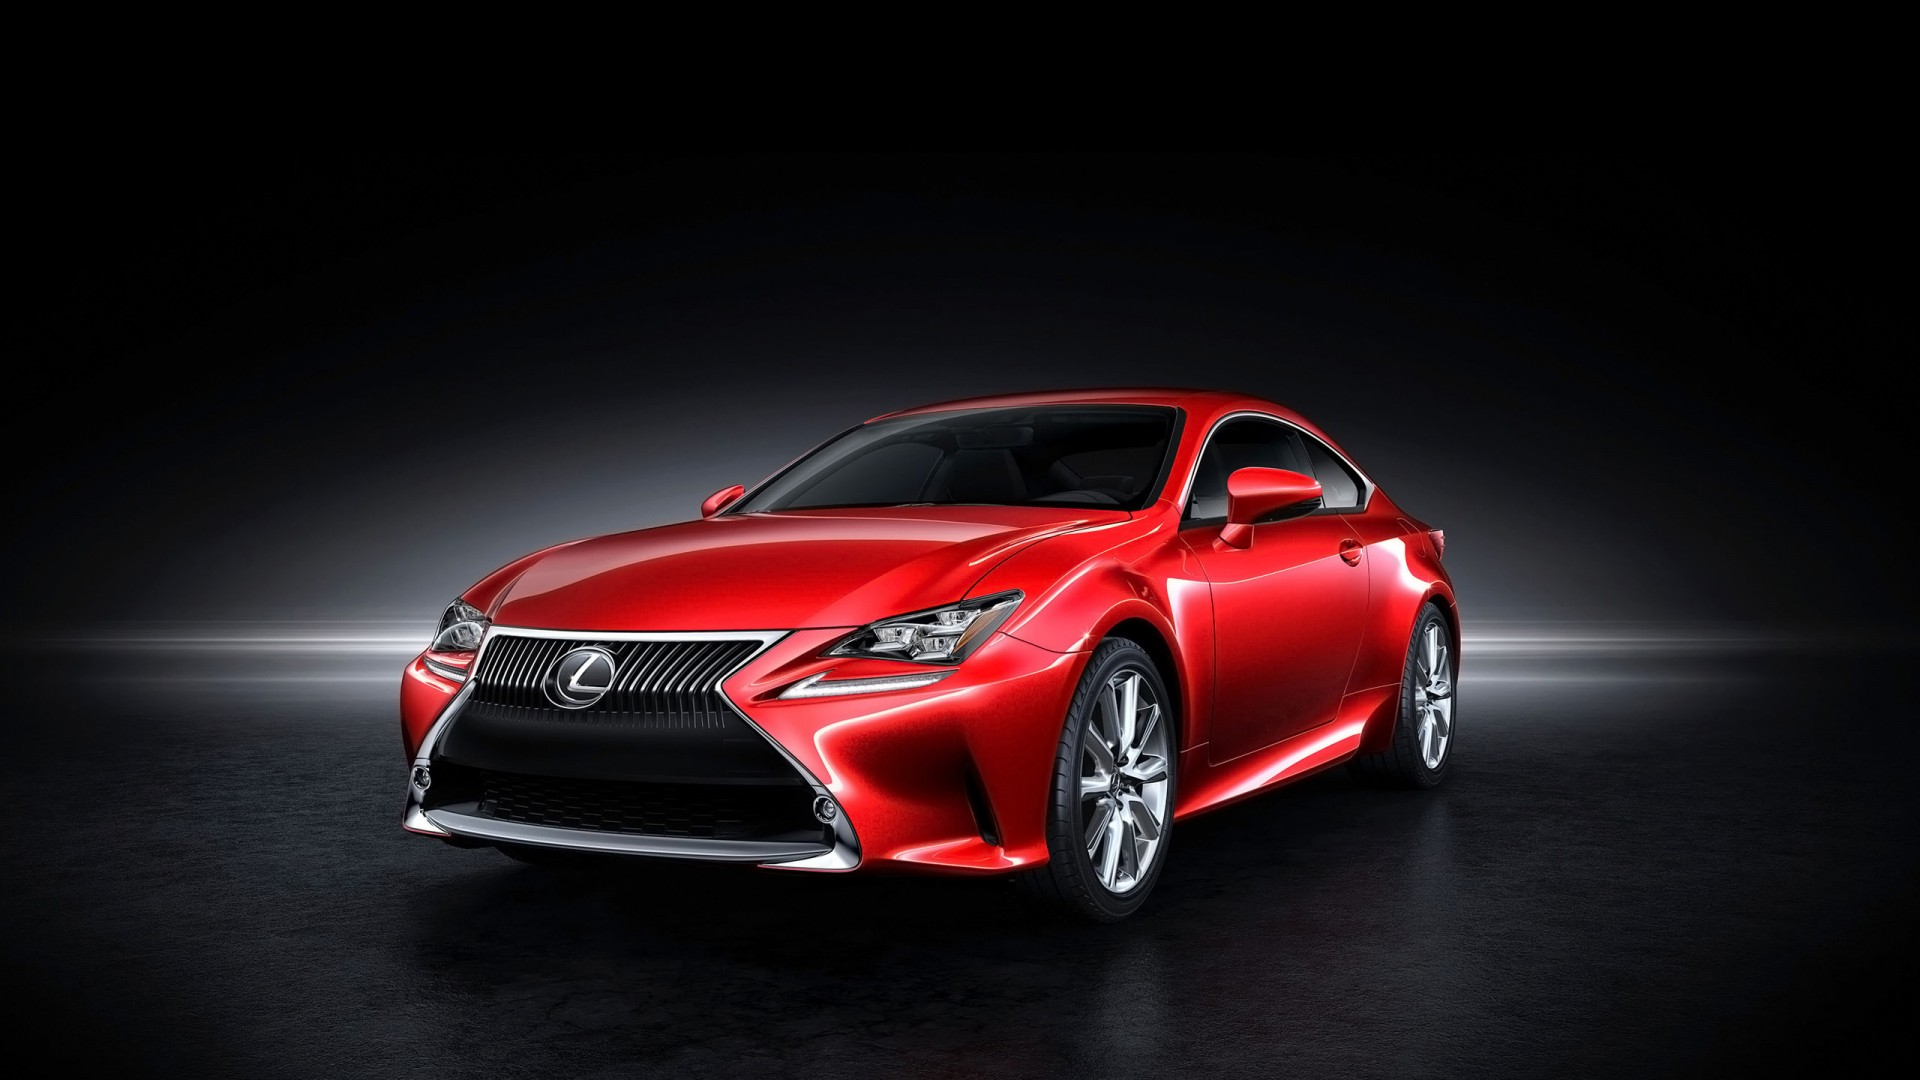 2014 lexus rc coupe wallpaper hd car wallpapers id 3923. Black Bedroom Furniture Sets. Home Design Ideas